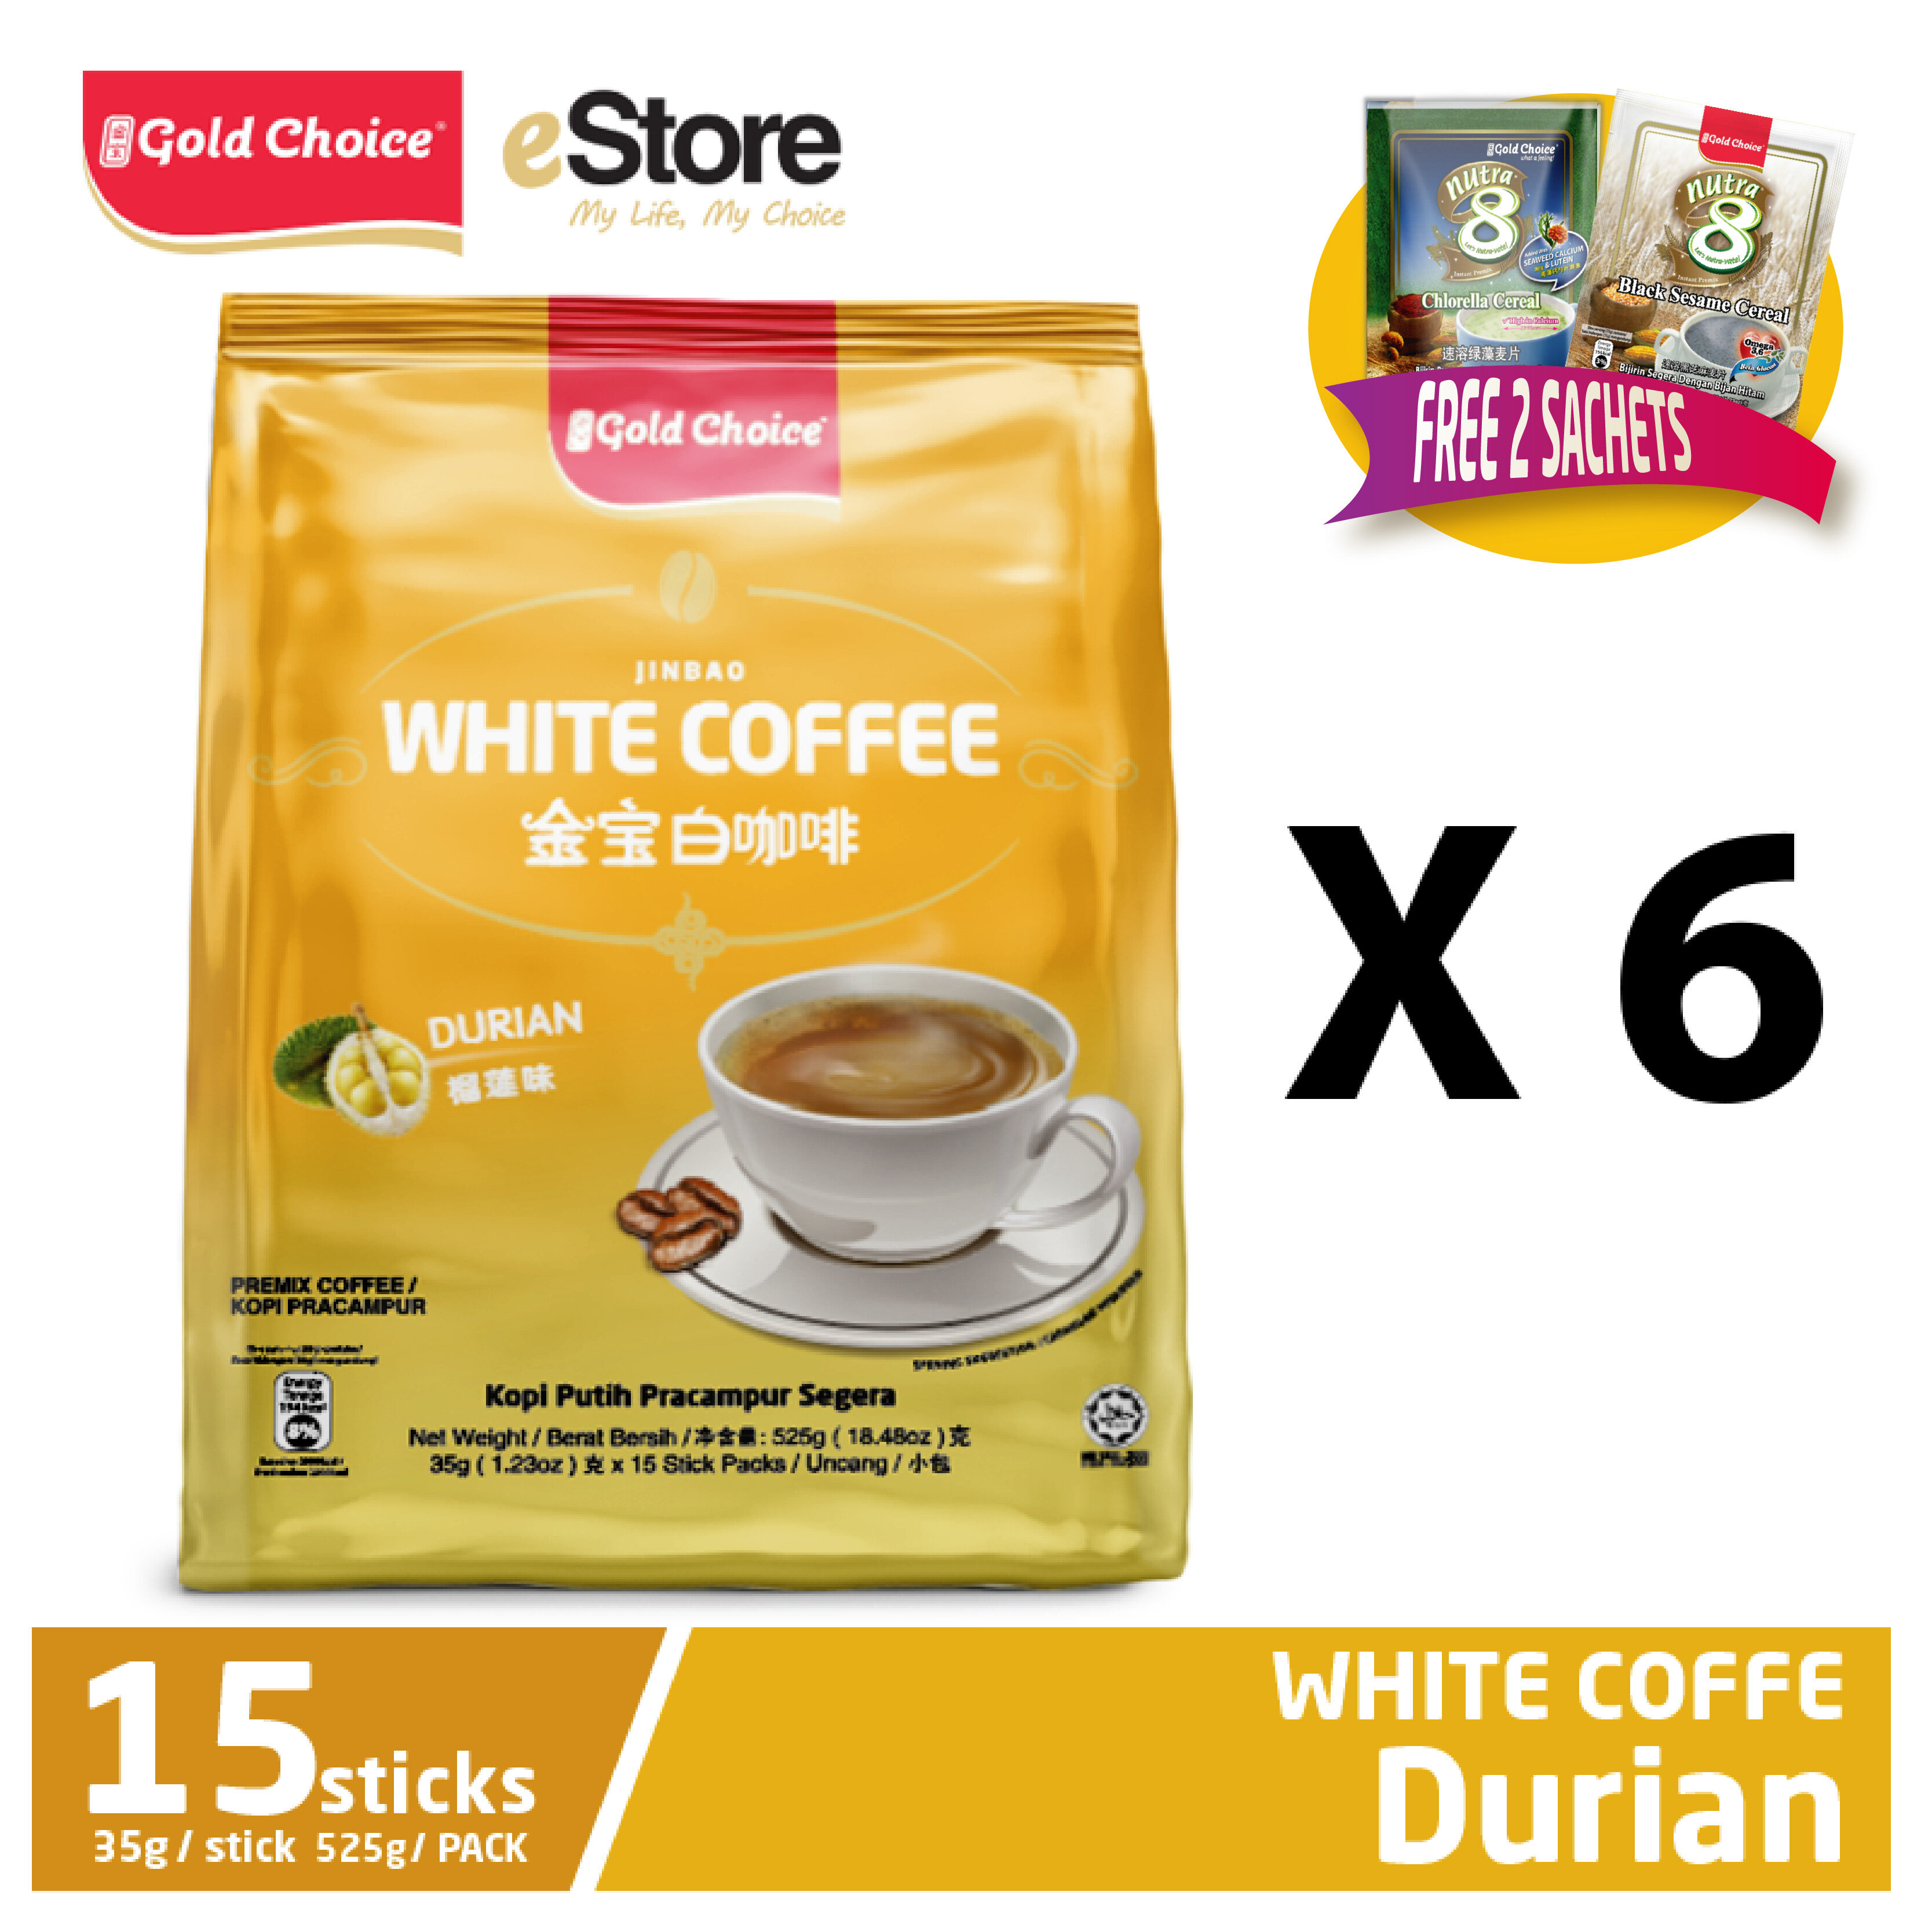 GOLD CHOICE JINBAO White Coffee With Durian - (35g X 15'S) X 6 Packs In Bundle [2 FREE SACHETS PER PACK]